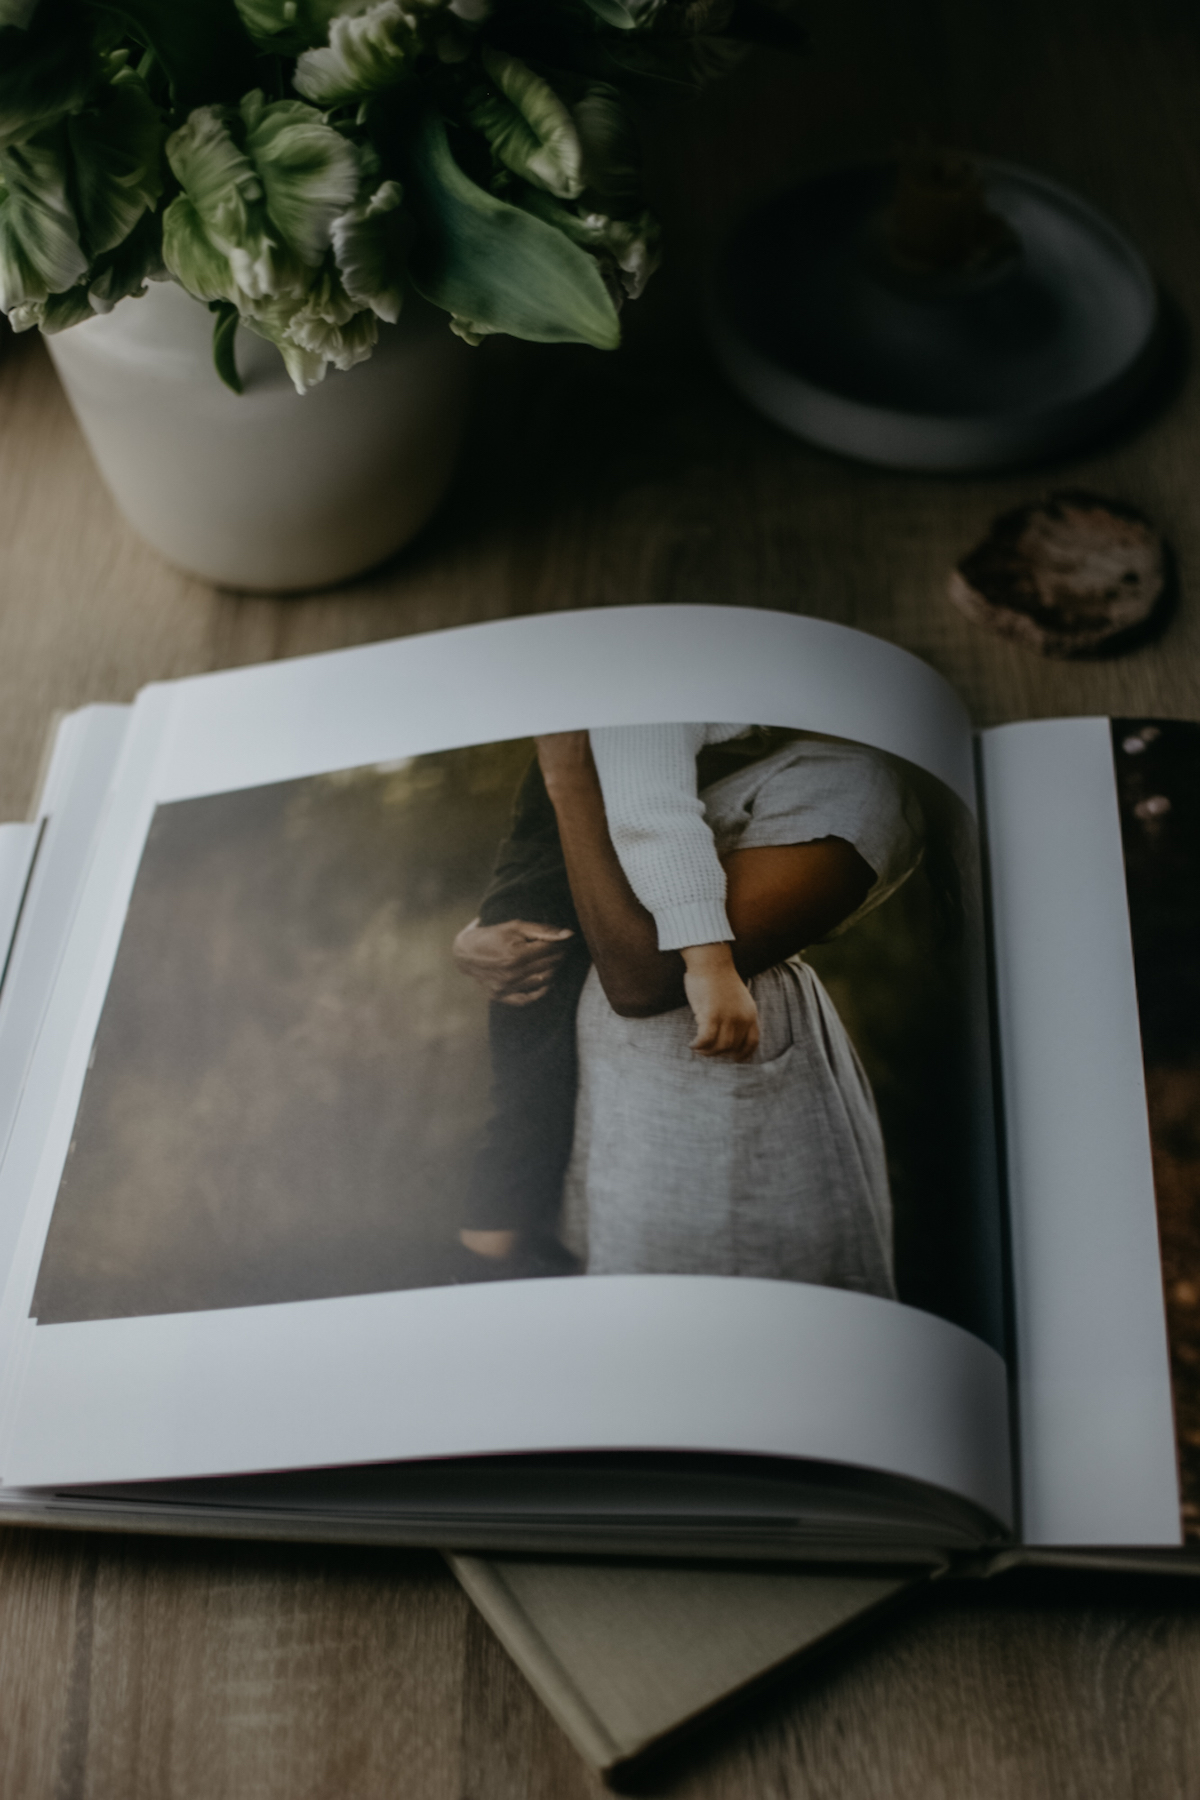 Photo album opened to photo of mother holding young child in her arms